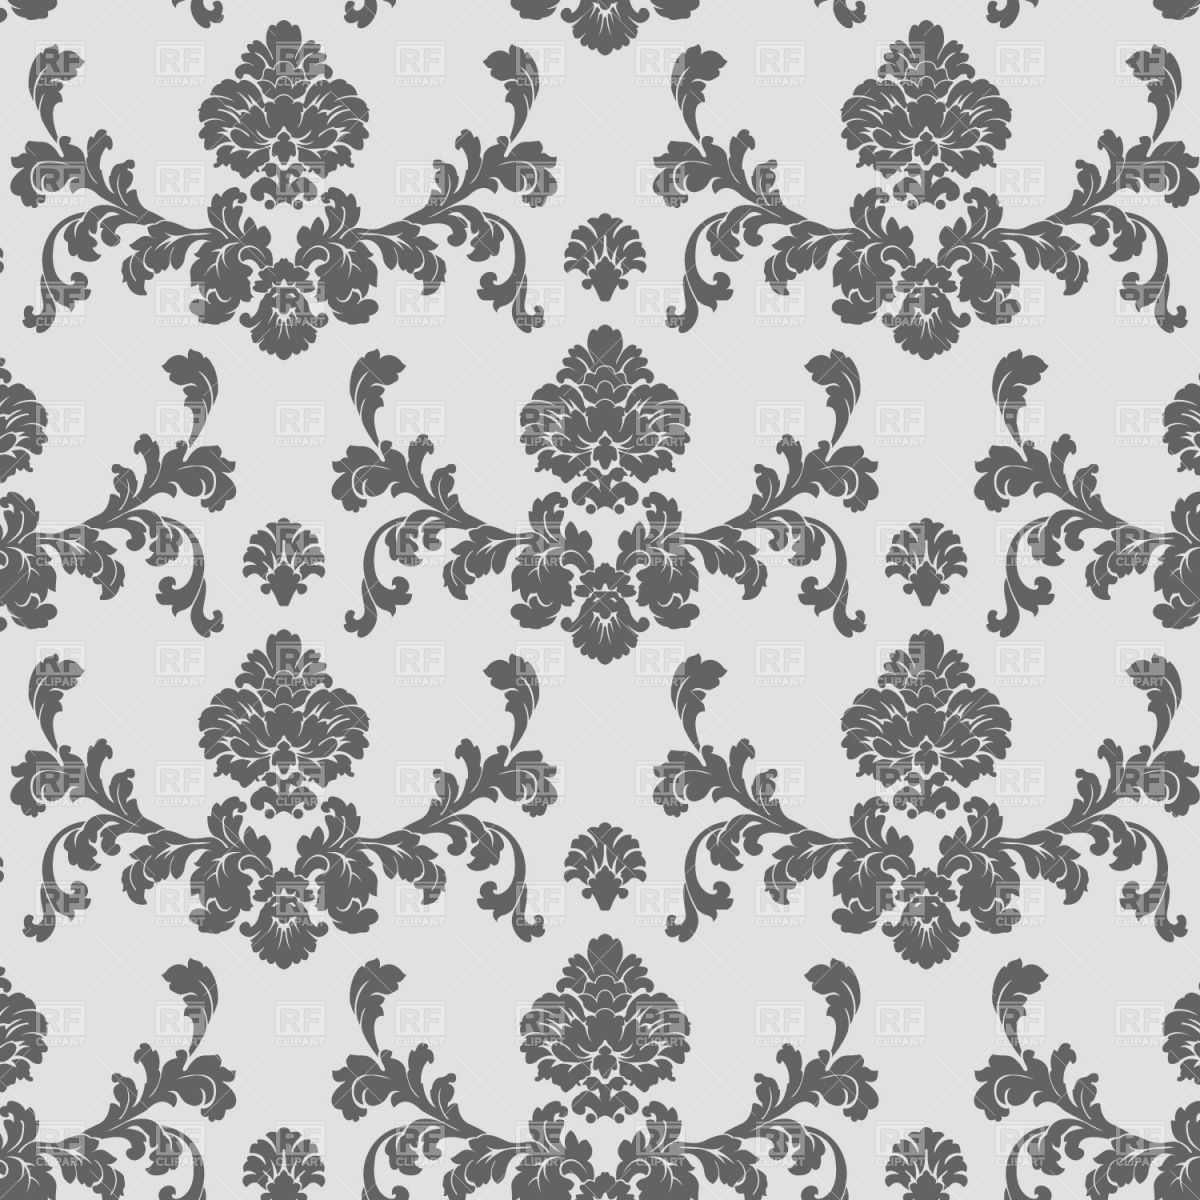 Classic seamless wallpaper pattern  Backgrounds  Textures  Abstract   download Royalty free vector clip art  eps. Random pattern    Classic Wallpaper Textures   Pinterest